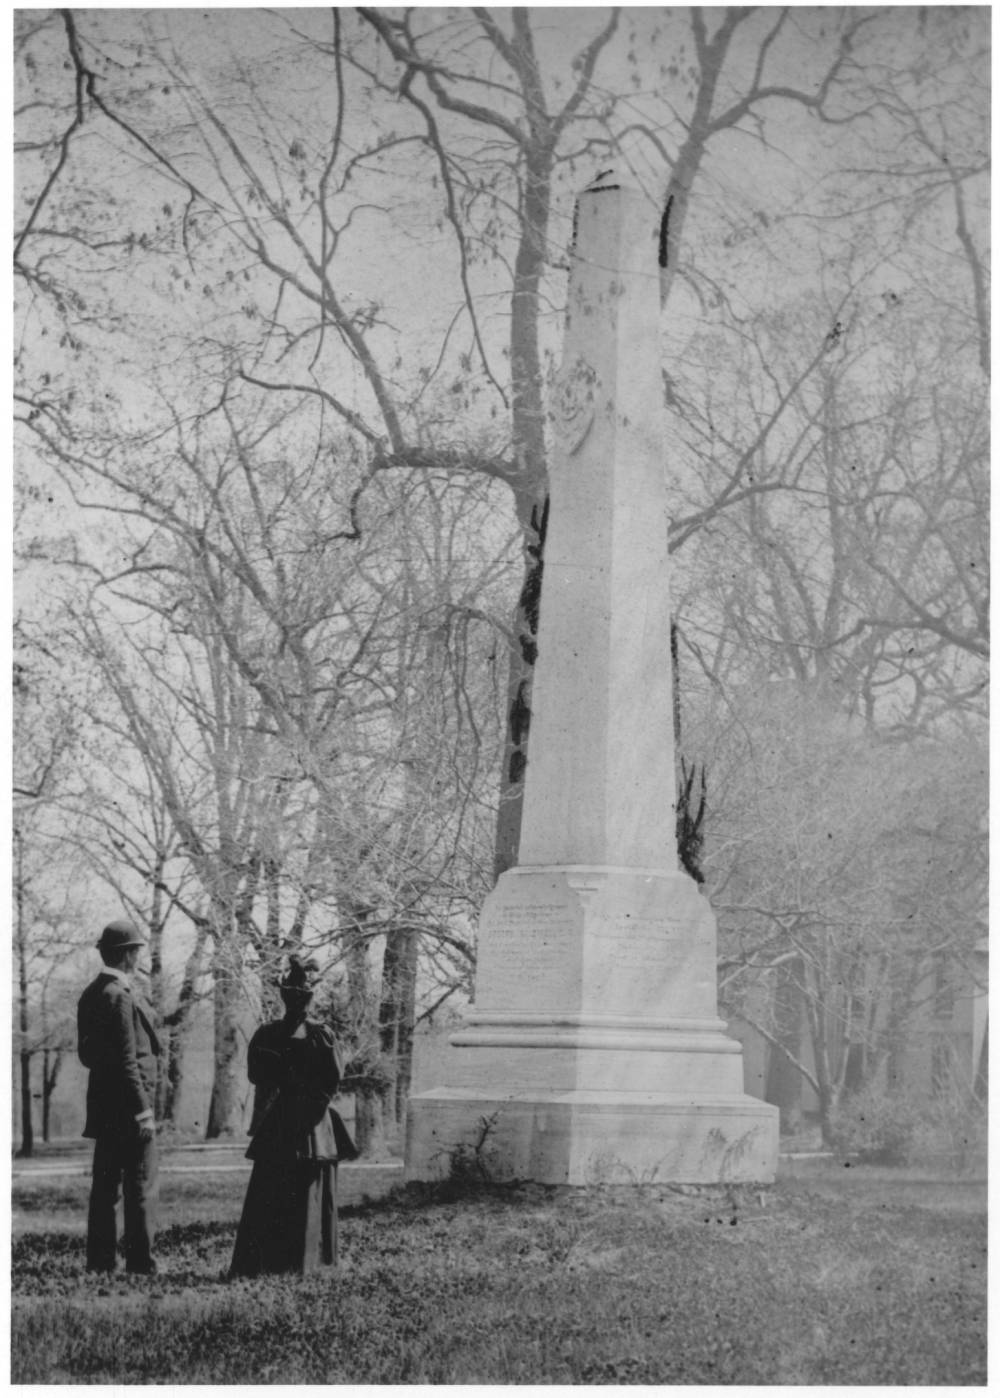 """""""Caldwell Monument, 1890-1939: Scan 1,"""" in the University of North Carolina at Chapel Hill Image Collection Collection #P0004, North Carolina Collection Photographic Archives, The Wilson Library, University of North Carolina at Chapel Hill."""